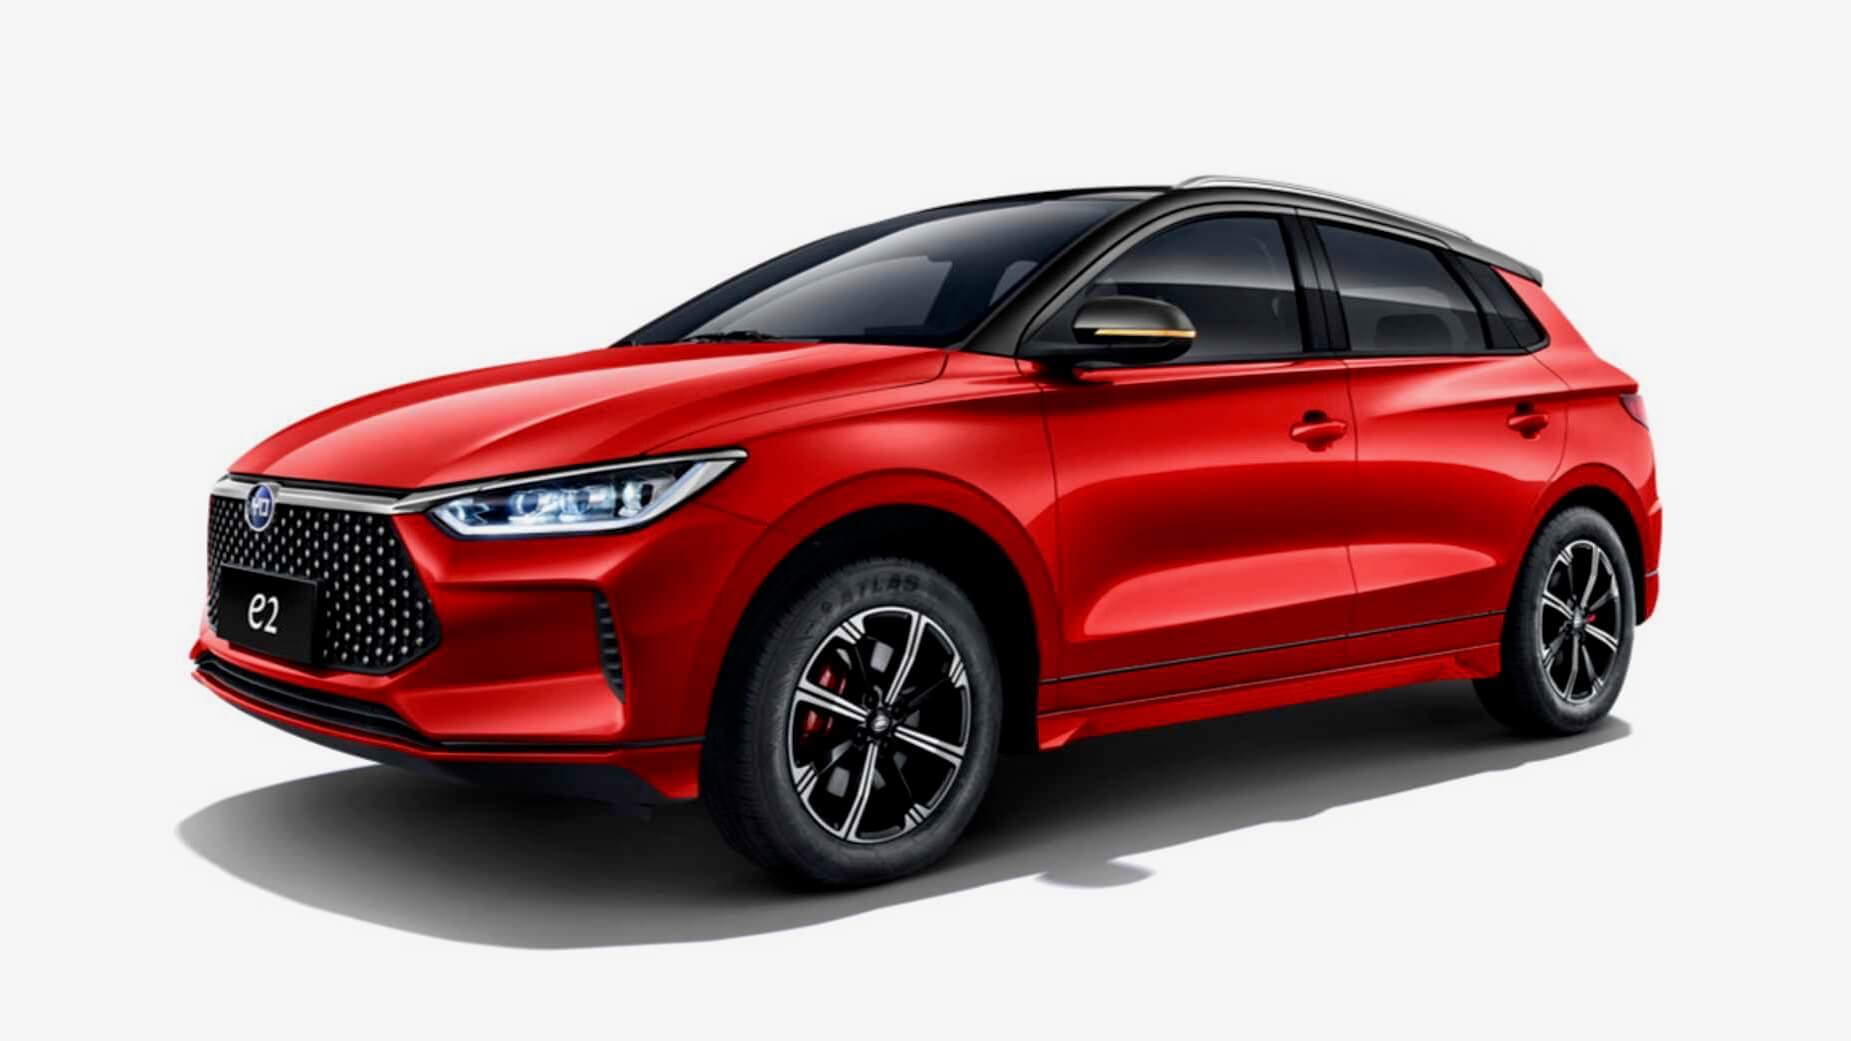 BYD e2 red